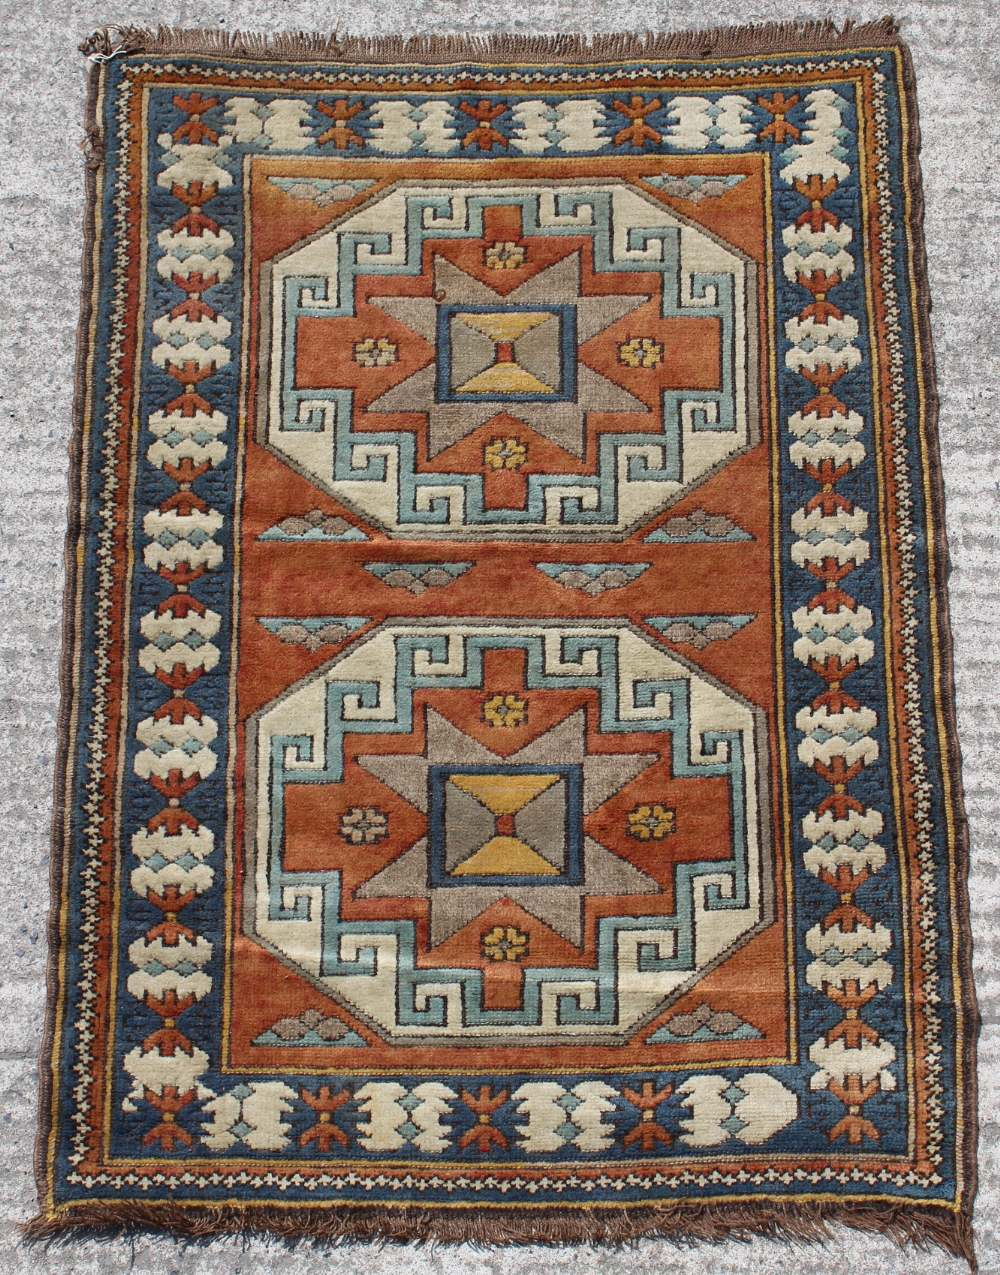 Property of a gentleman - a Turkish hand knotted rug of Kazak design, 58 by 43ins. (148 by 99cms.).